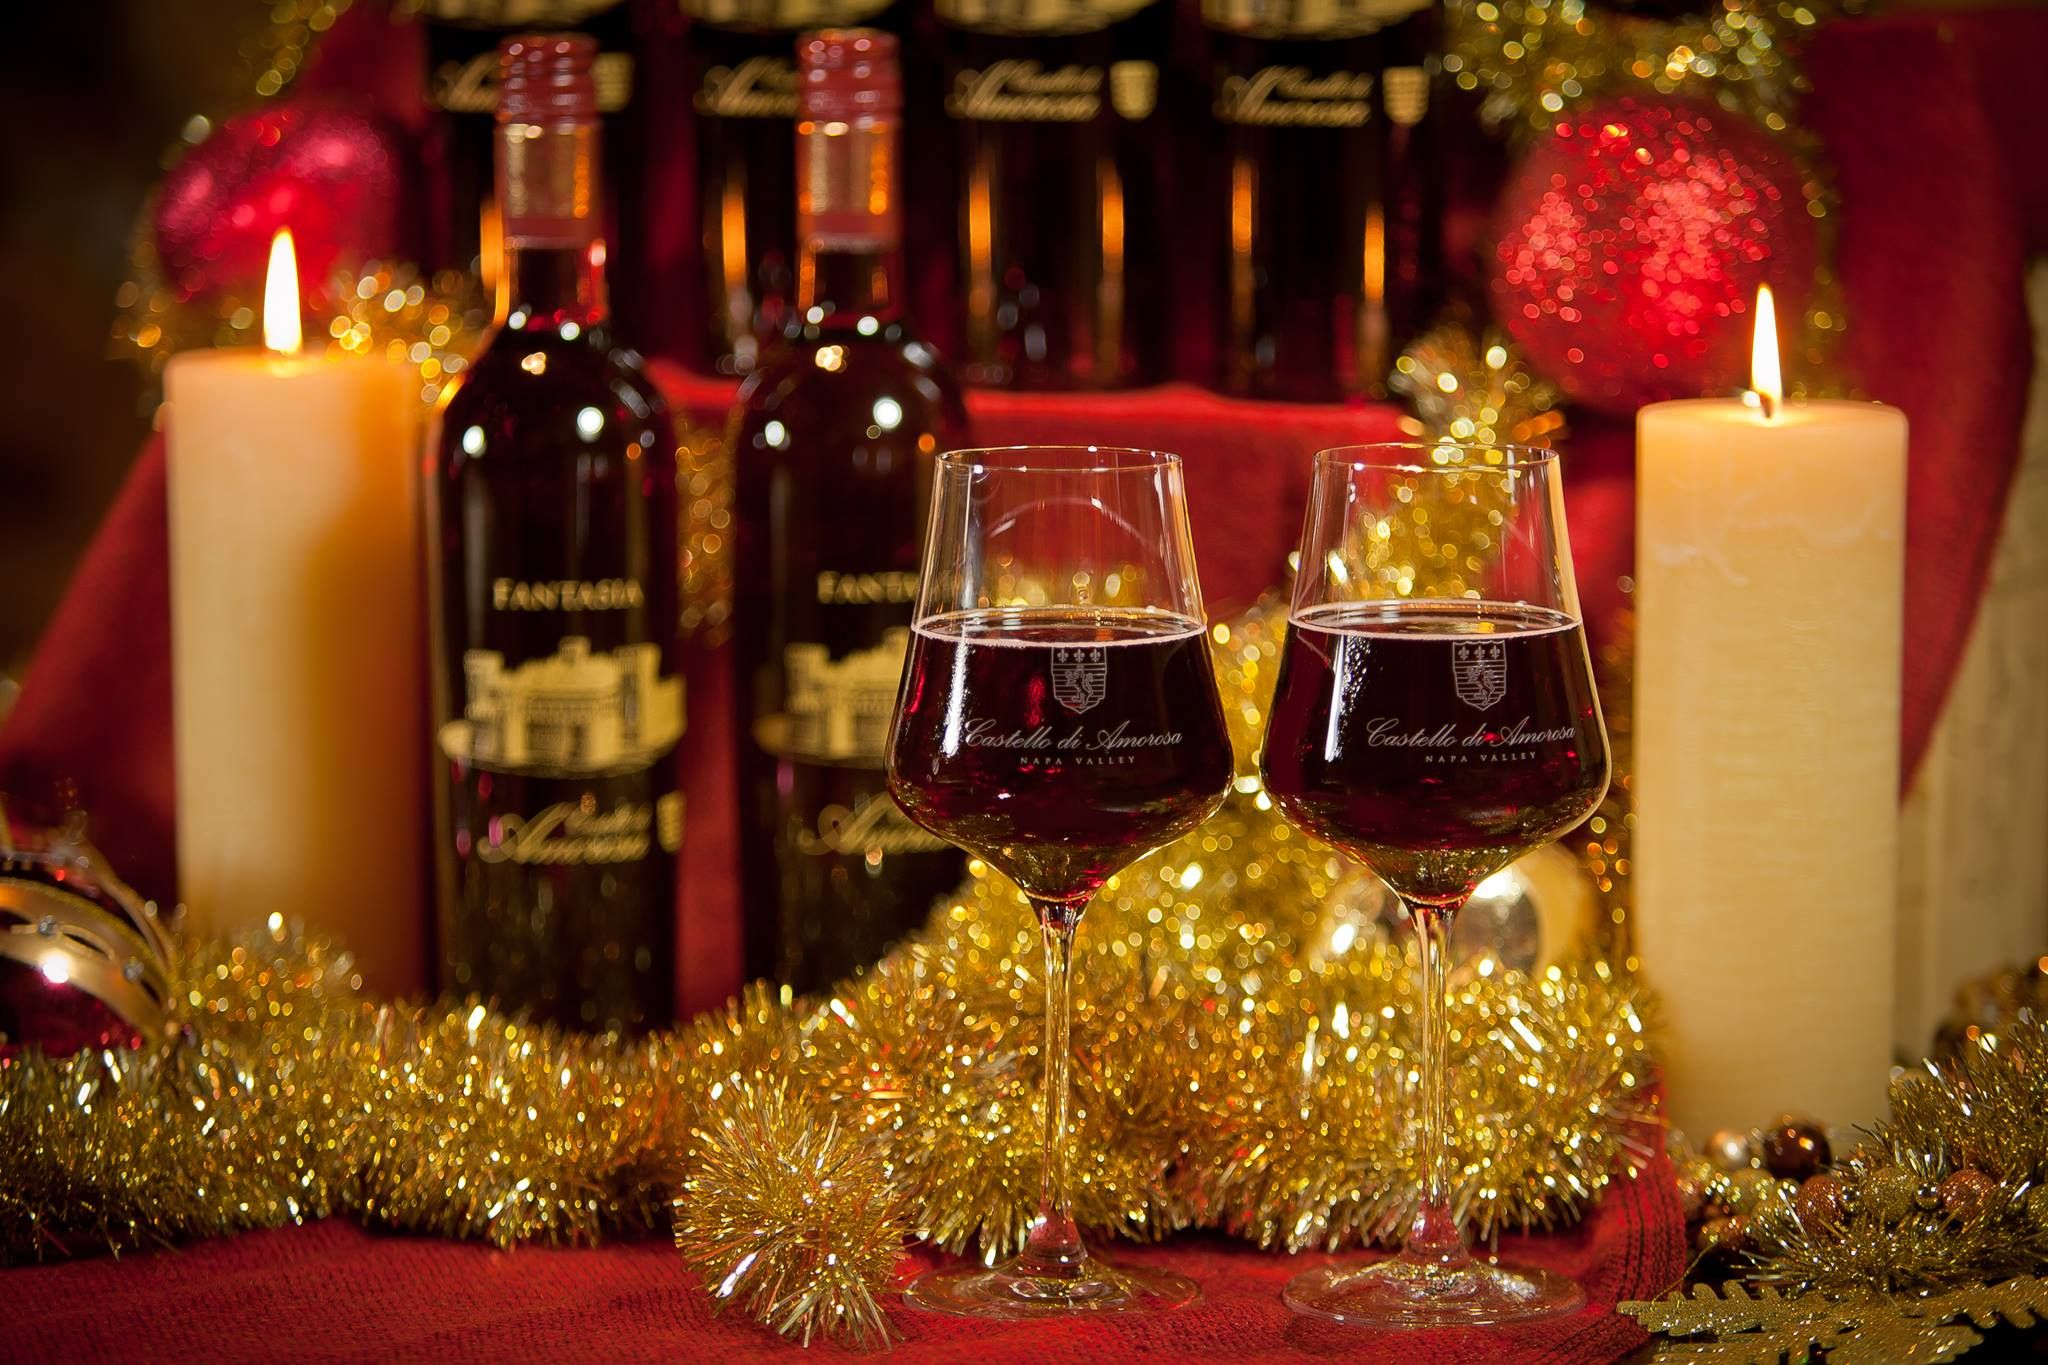 Add a little sparkle to this holiday season with Castello di ...